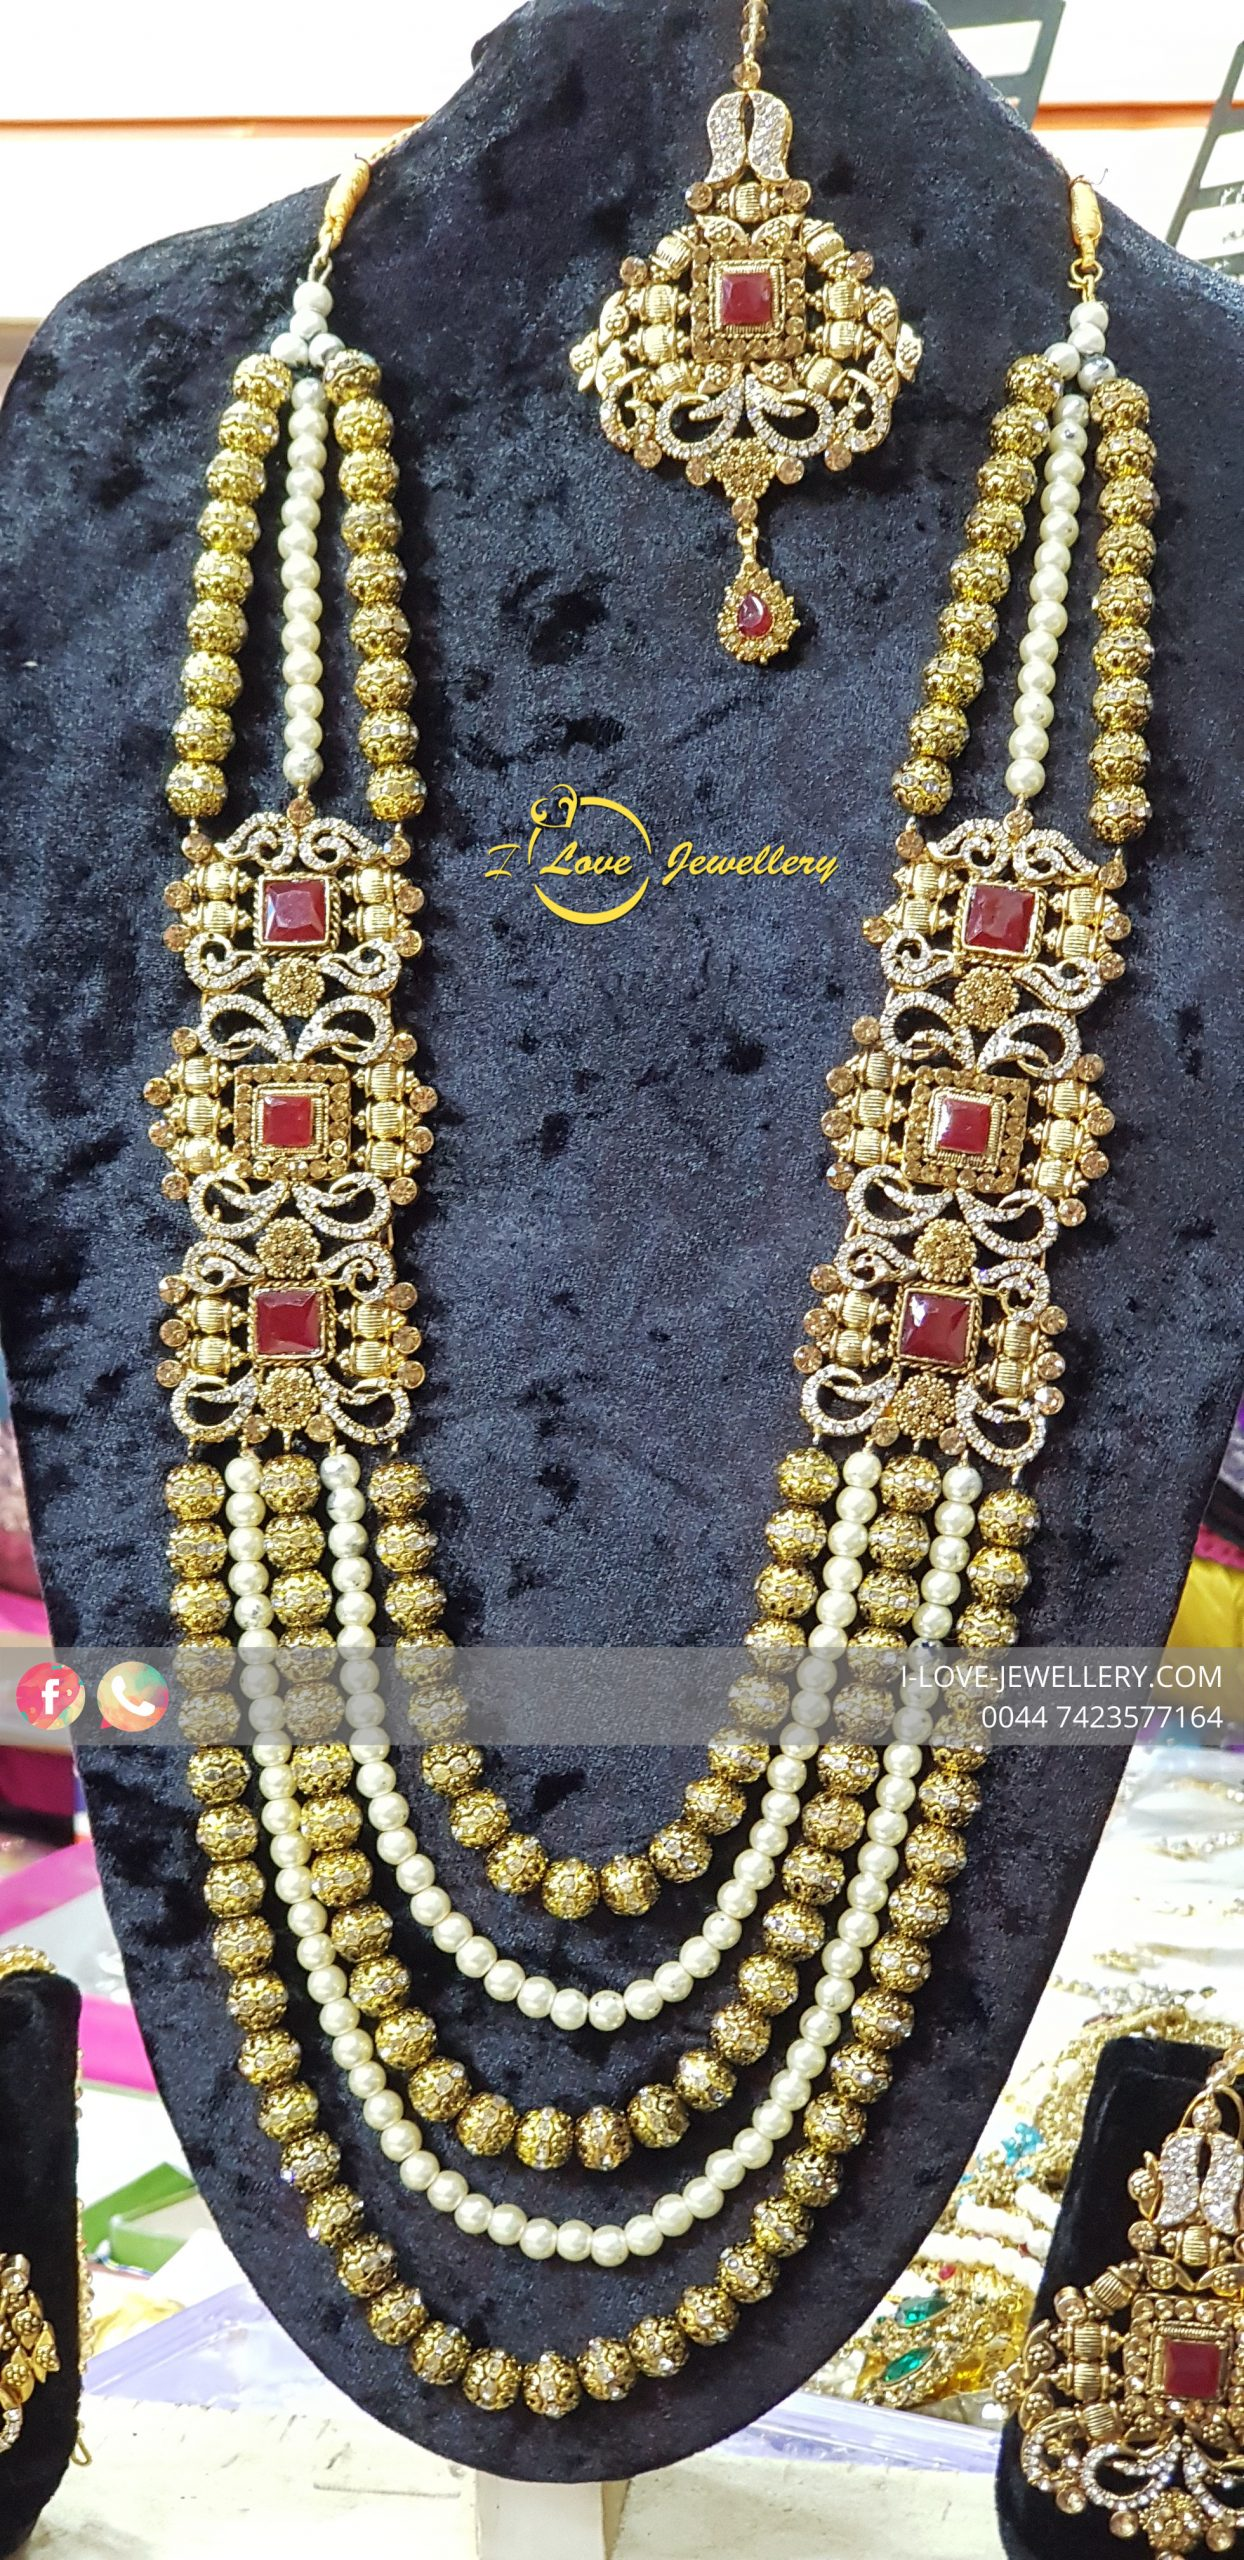 Pakistani bridal jewellery - maroon bridal necklace - bridal chokers - bridal mala - mehndi jewellery - Pakistani wedding jewellery - Pakistani bridal jewellery - wholesale Pakistani jewellery - bespoke Pakistani jewellery